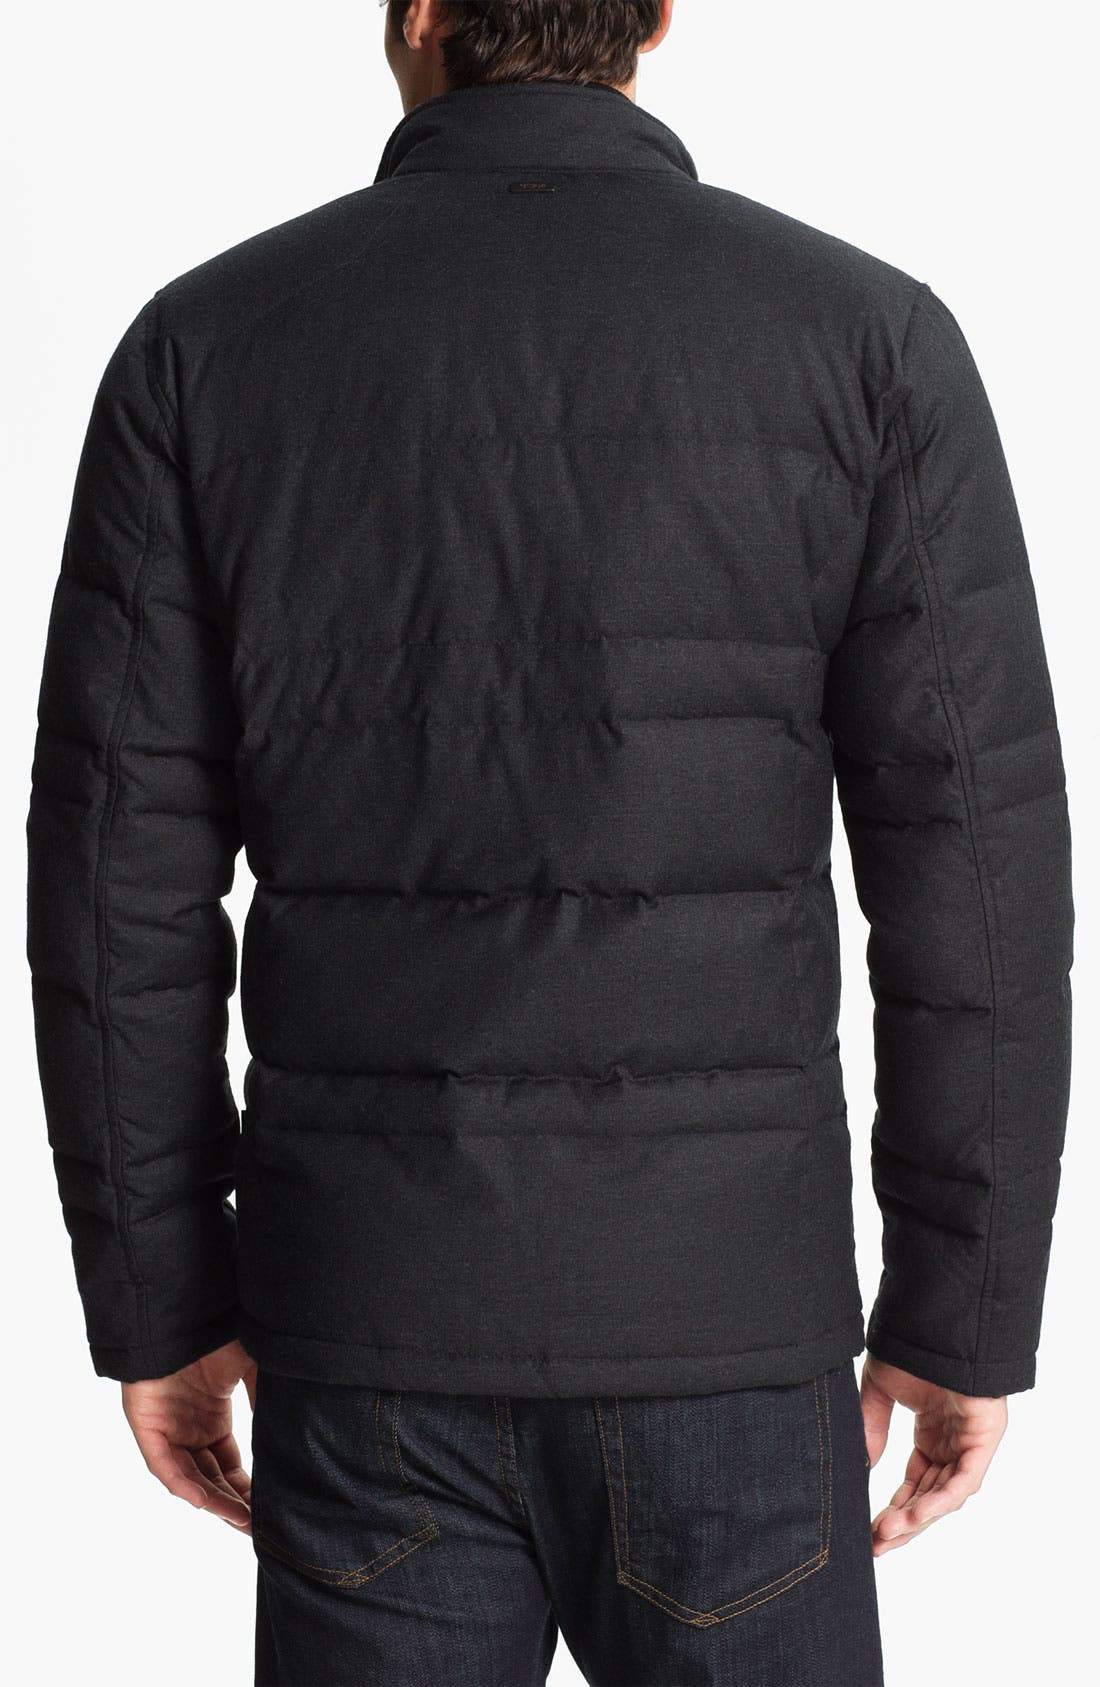 Alternate Image 2  - Tumi Wool & Cashmere Puffer Jacket with Down Fill